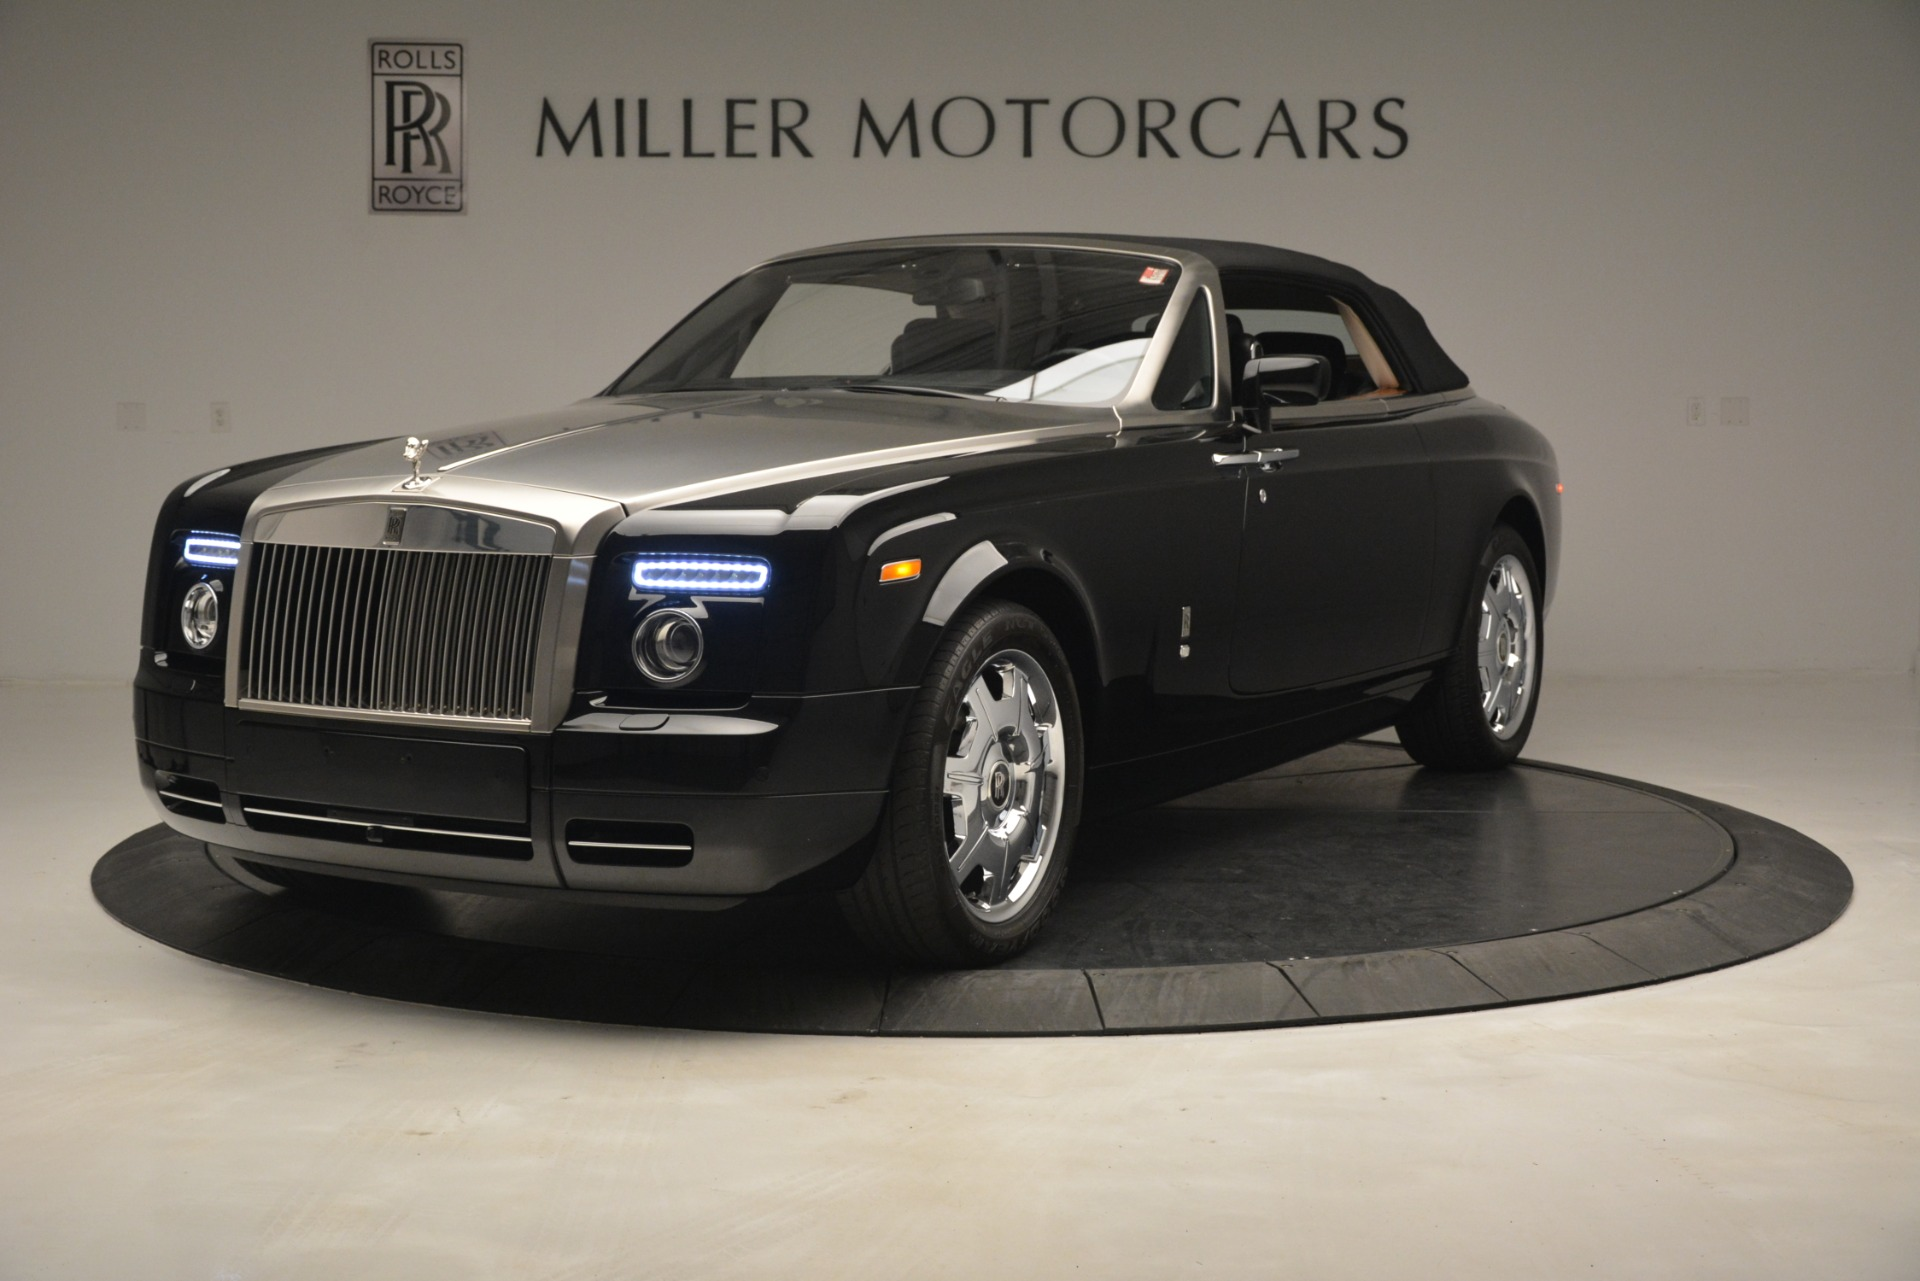 Used 2008 Rolls-Royce Phantom Drophead Coupe  For Sale In Greenwich, CT 3000_p34